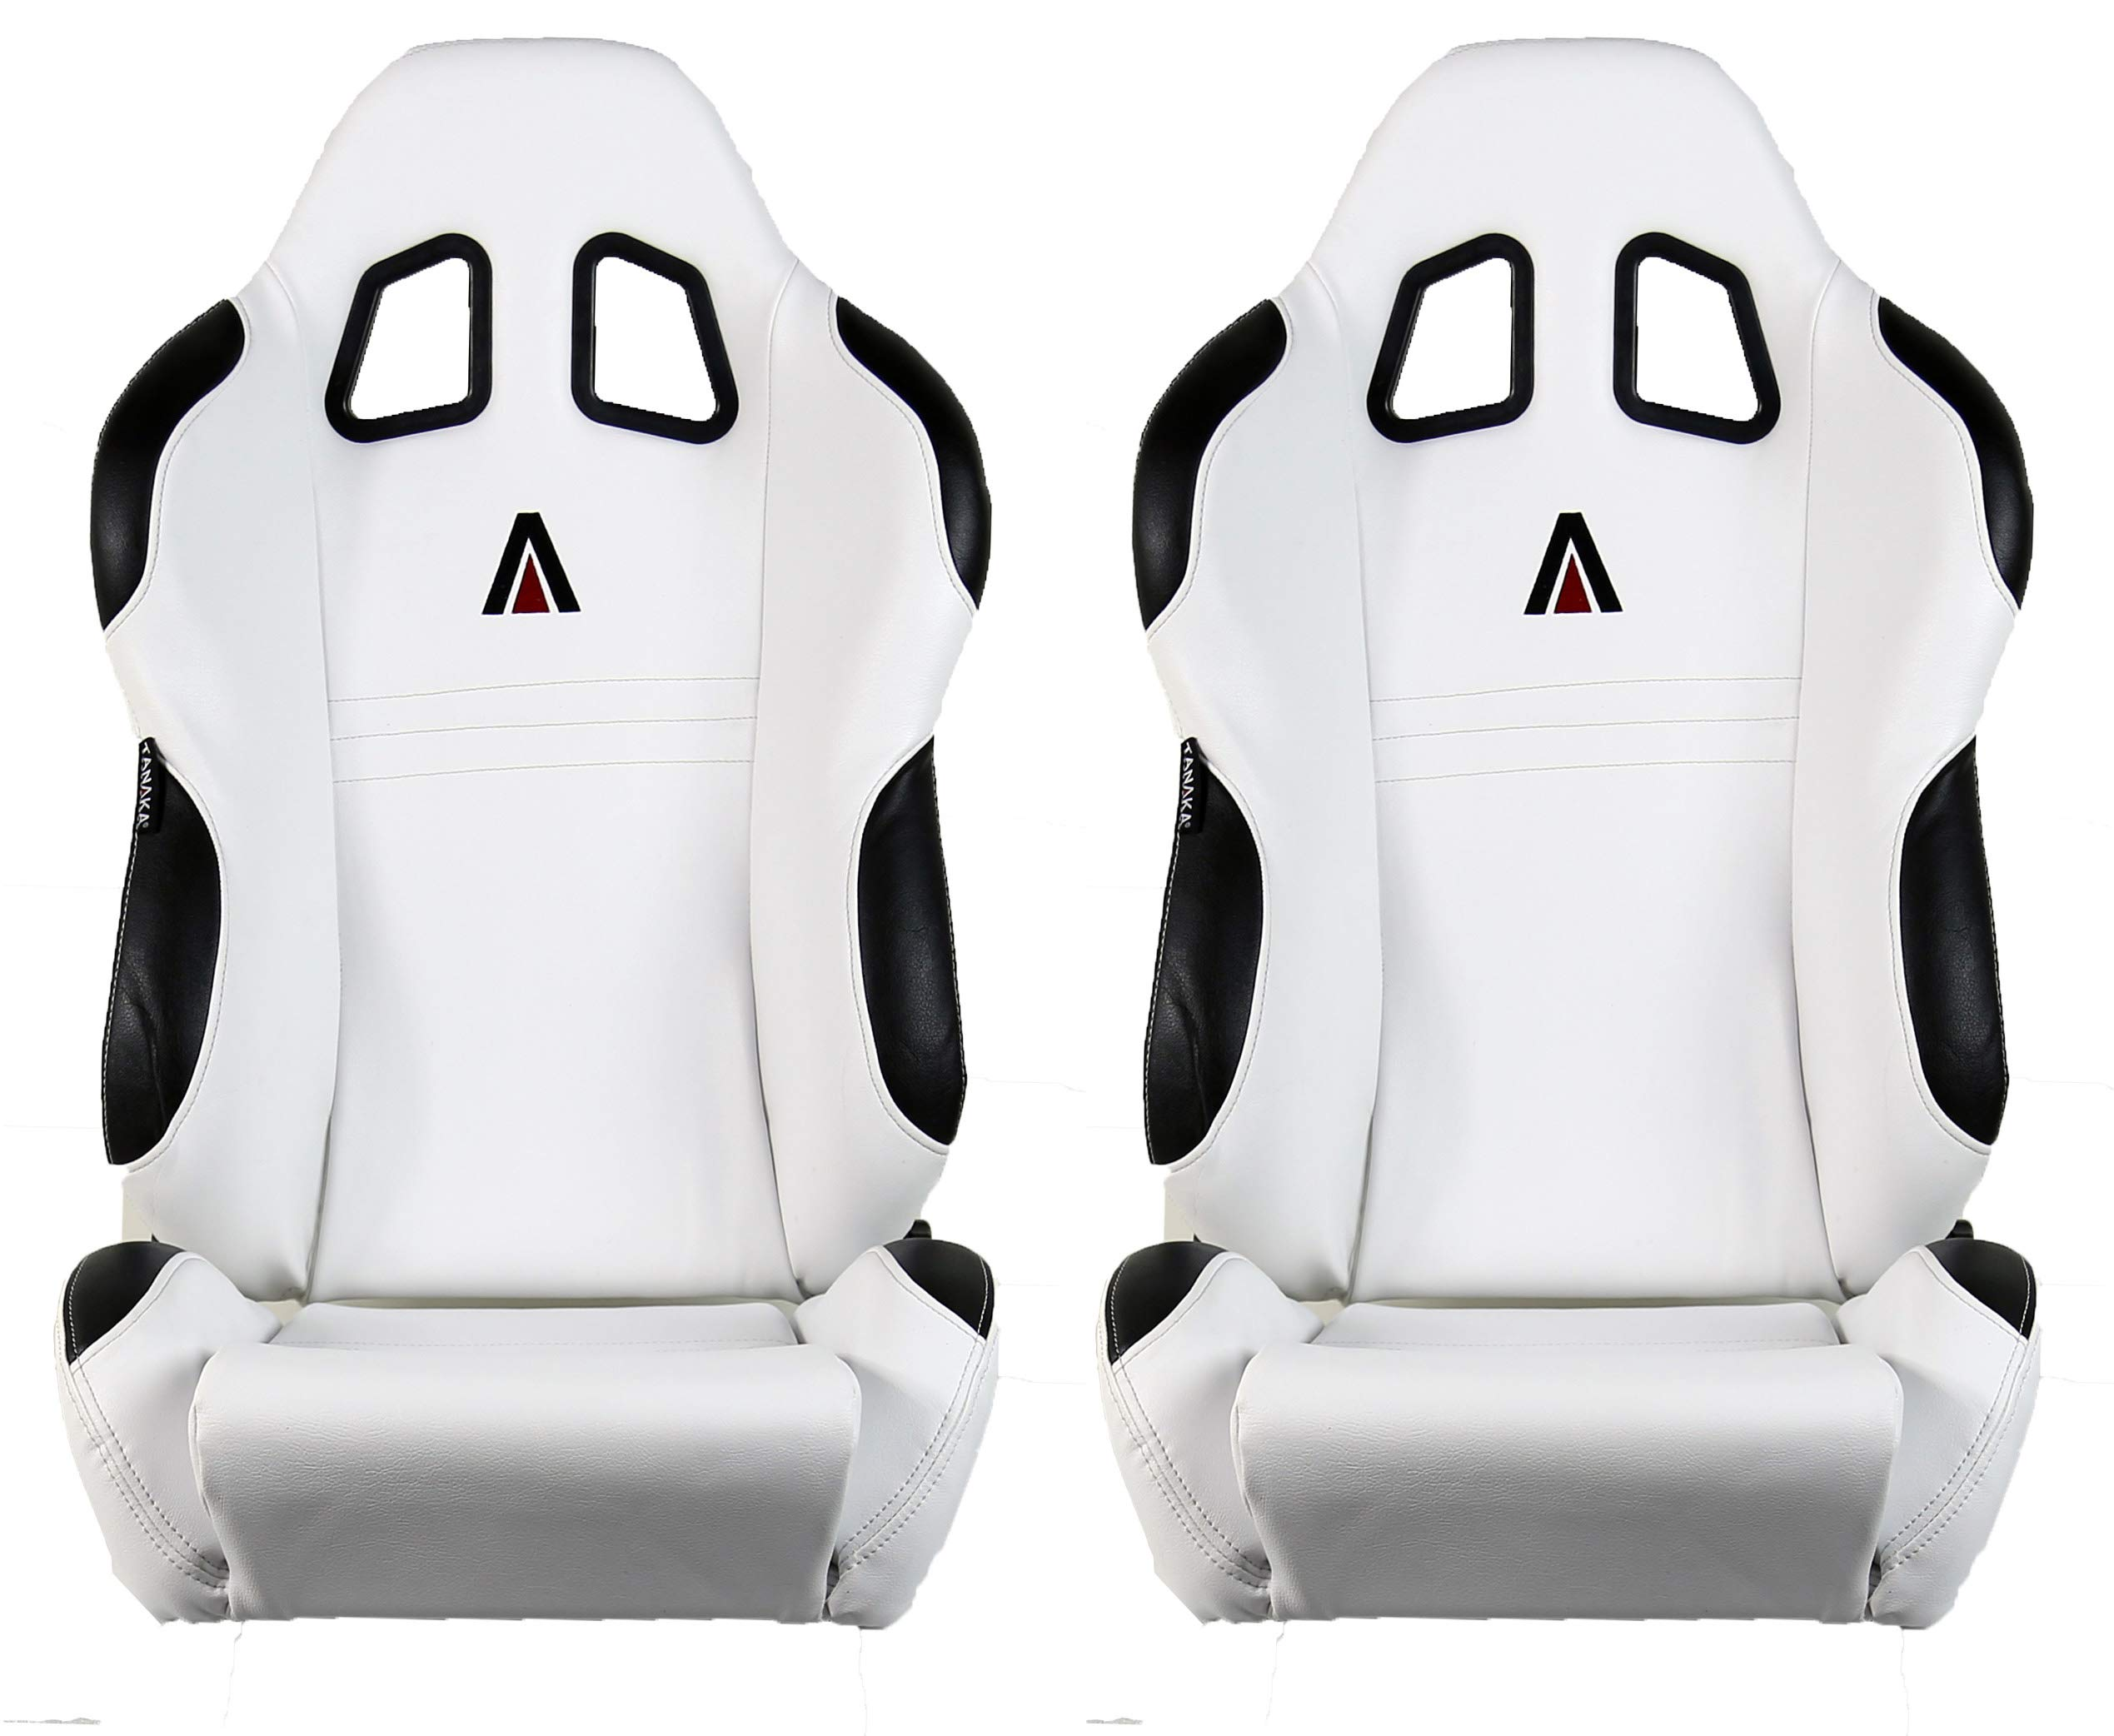 Tanaka Black Faux Leather Reclinable Sport Racing Seat-Pair (Black White)